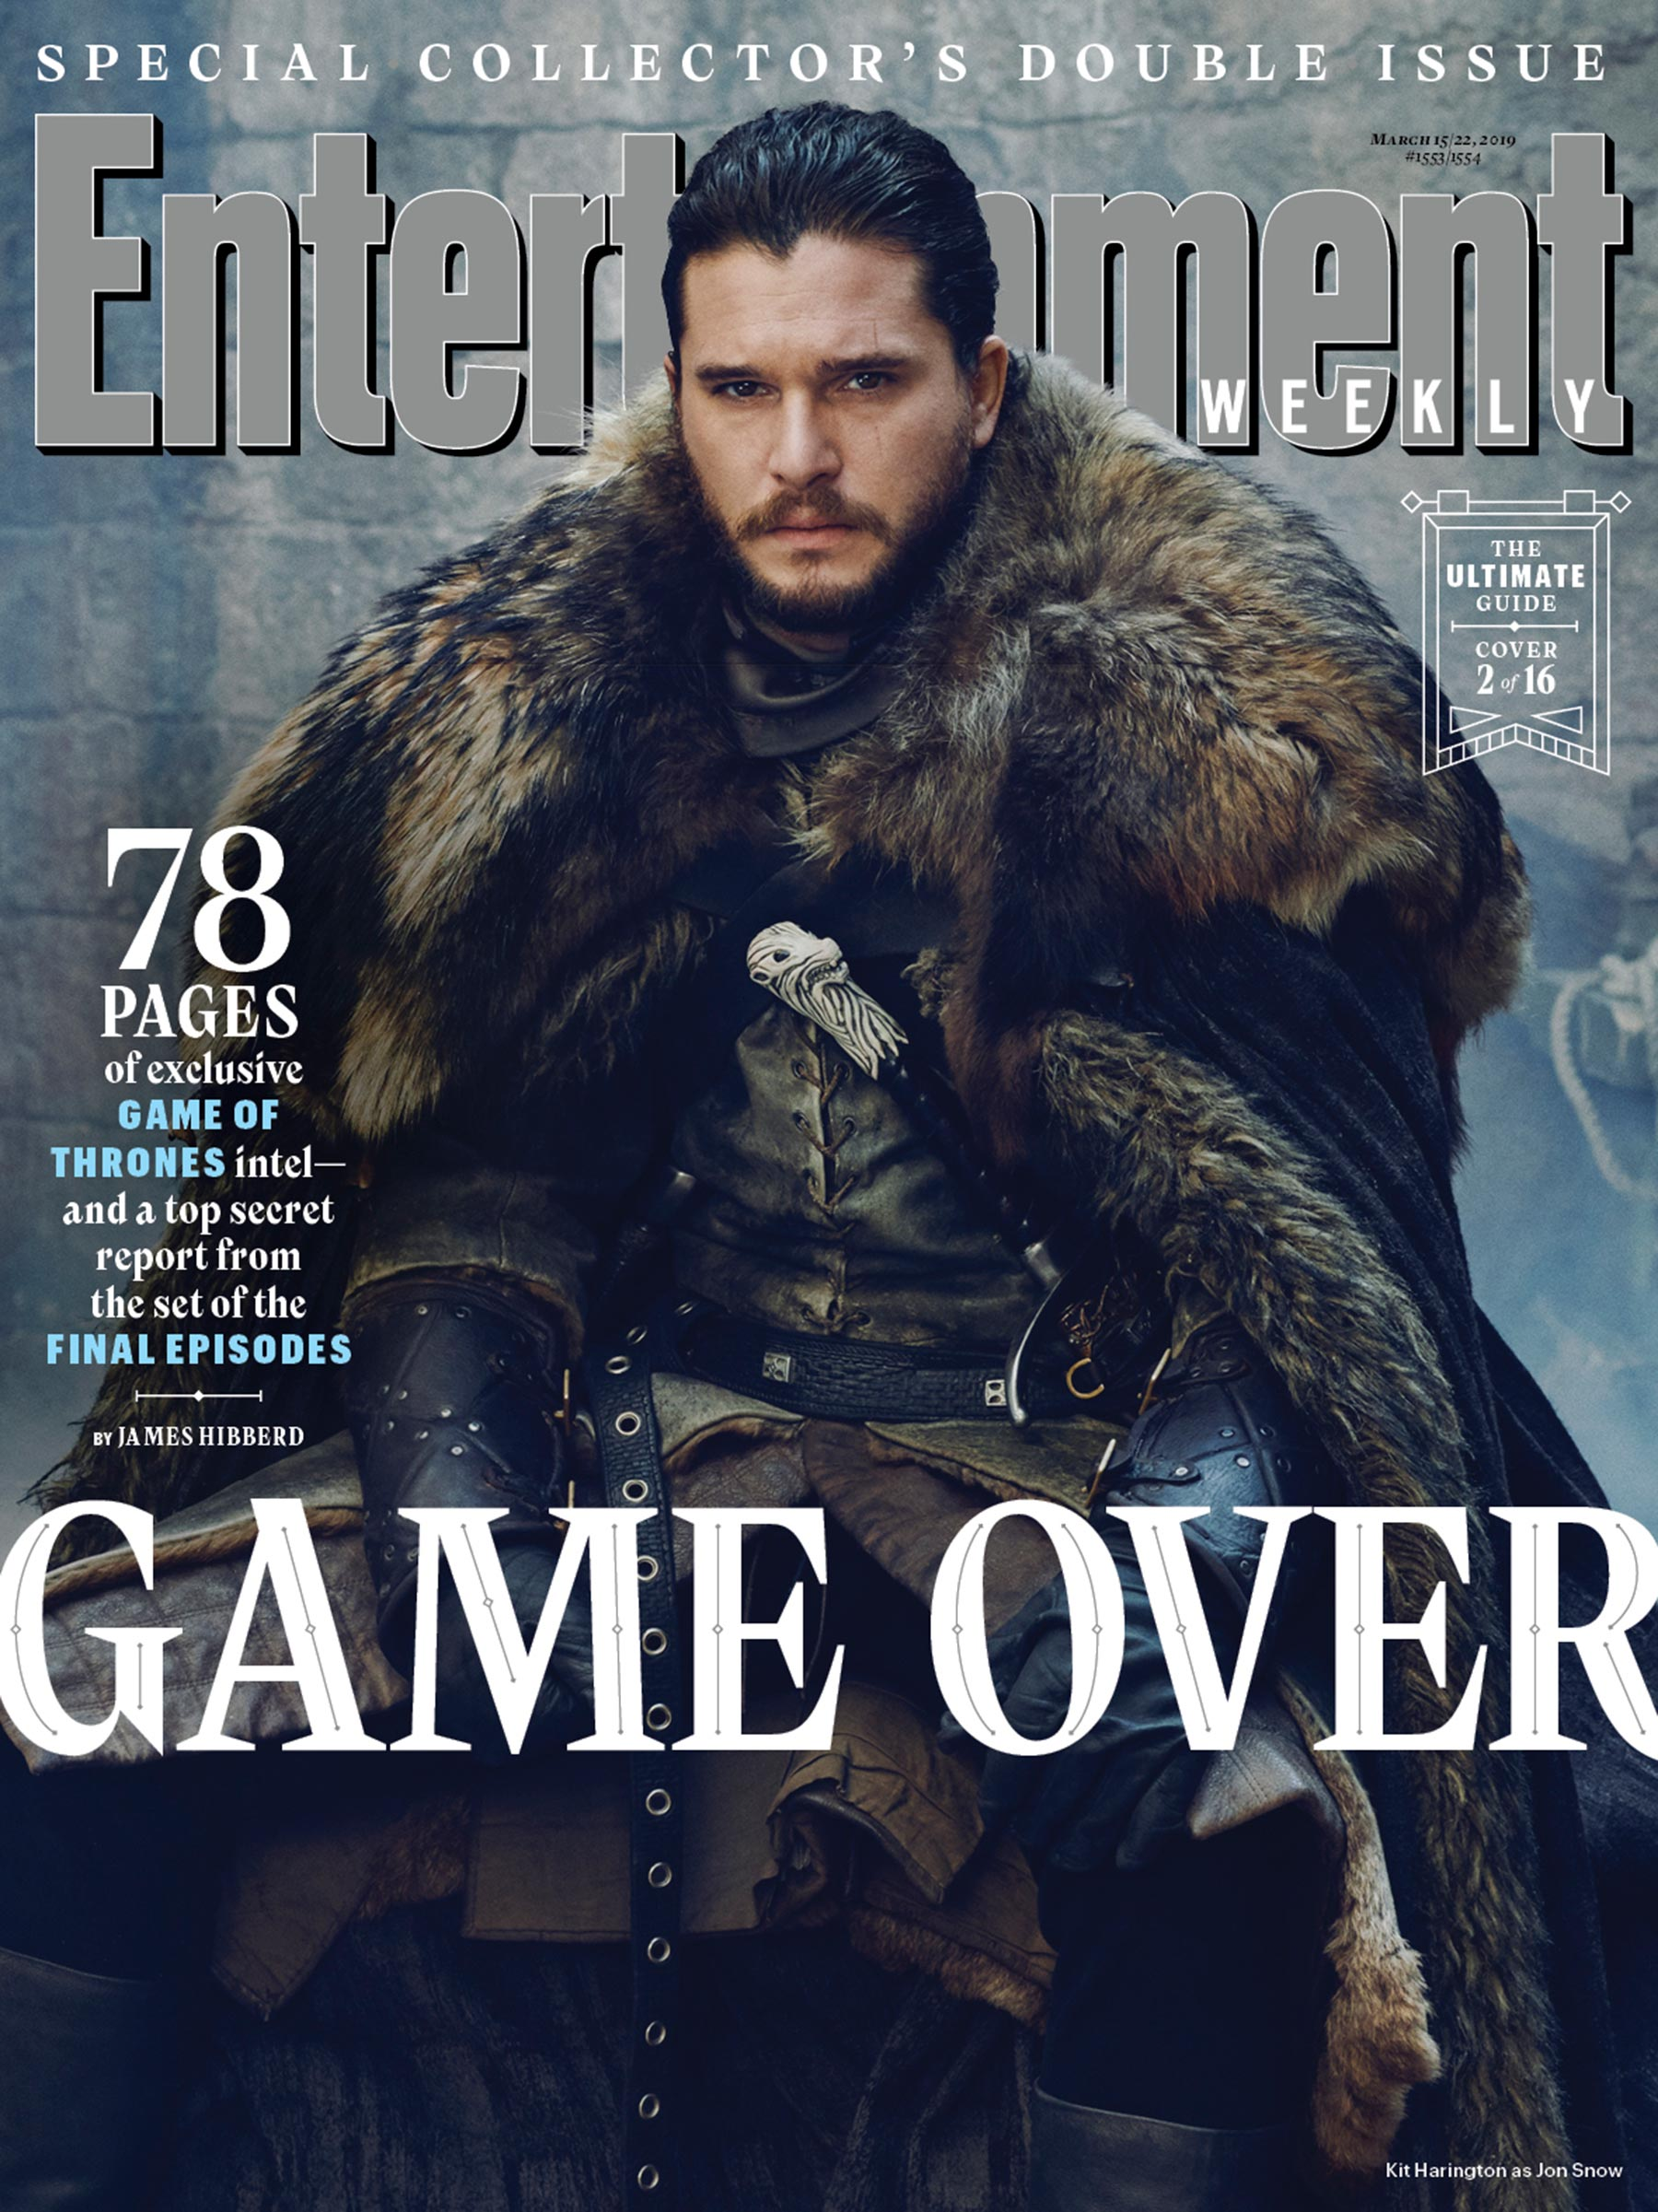 Entertainment Weekly Cover - March 2019 - Kit Harington as Jon Snow